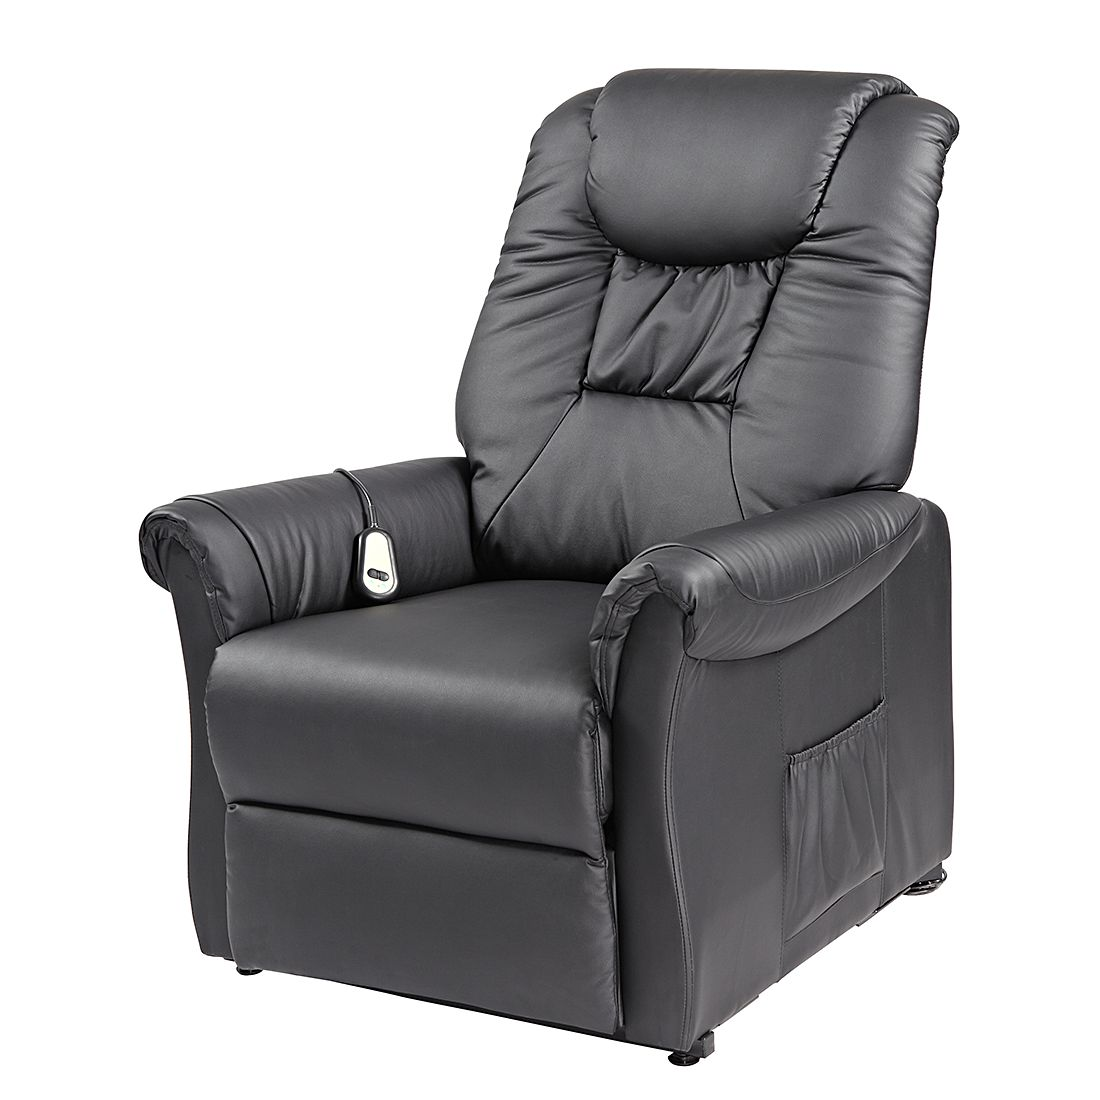 Largeur guide d 39 achat for Relax stoel